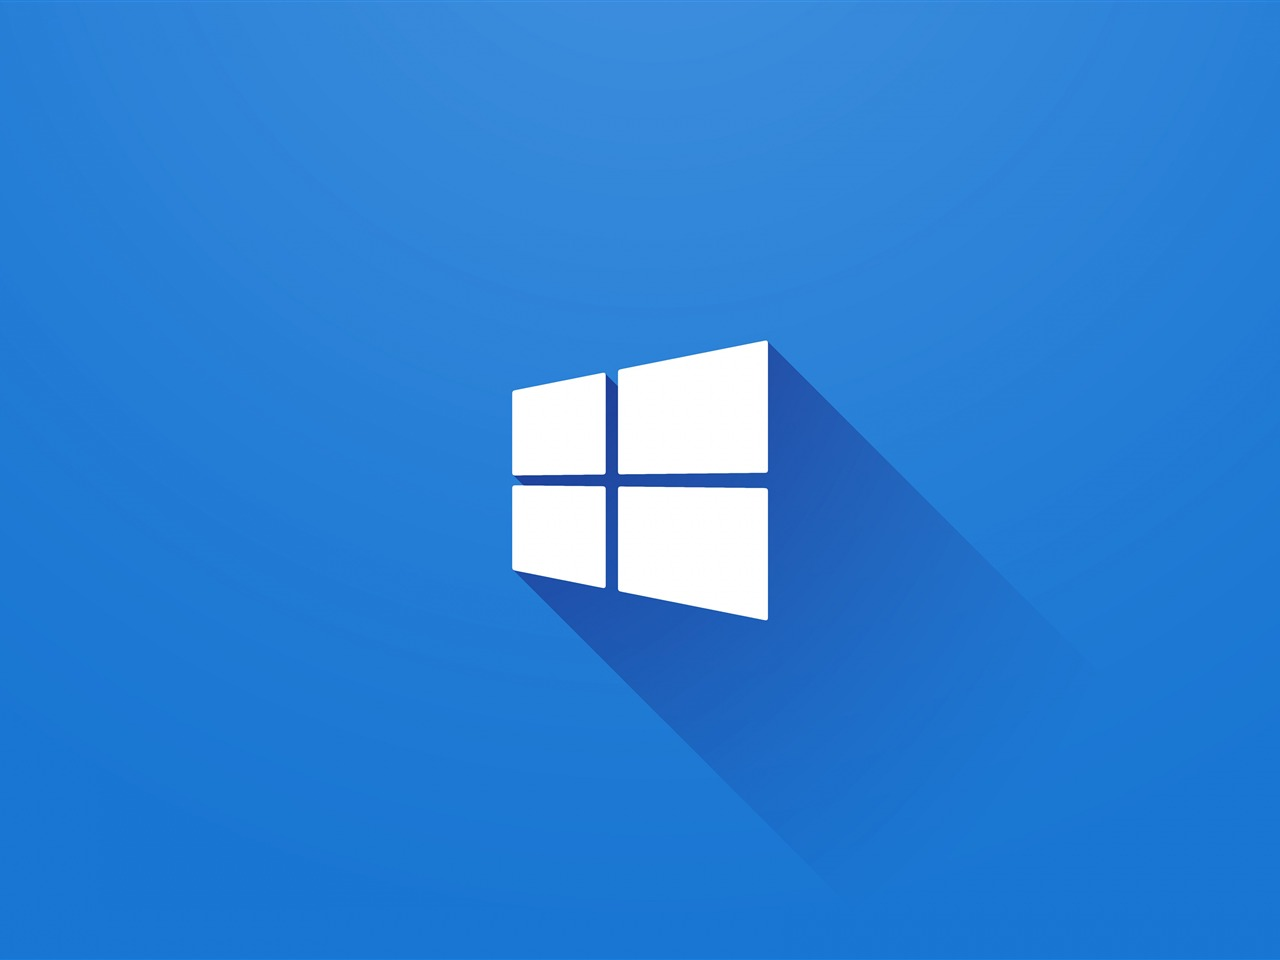 windows 10 logo 2010 blue desktop preview